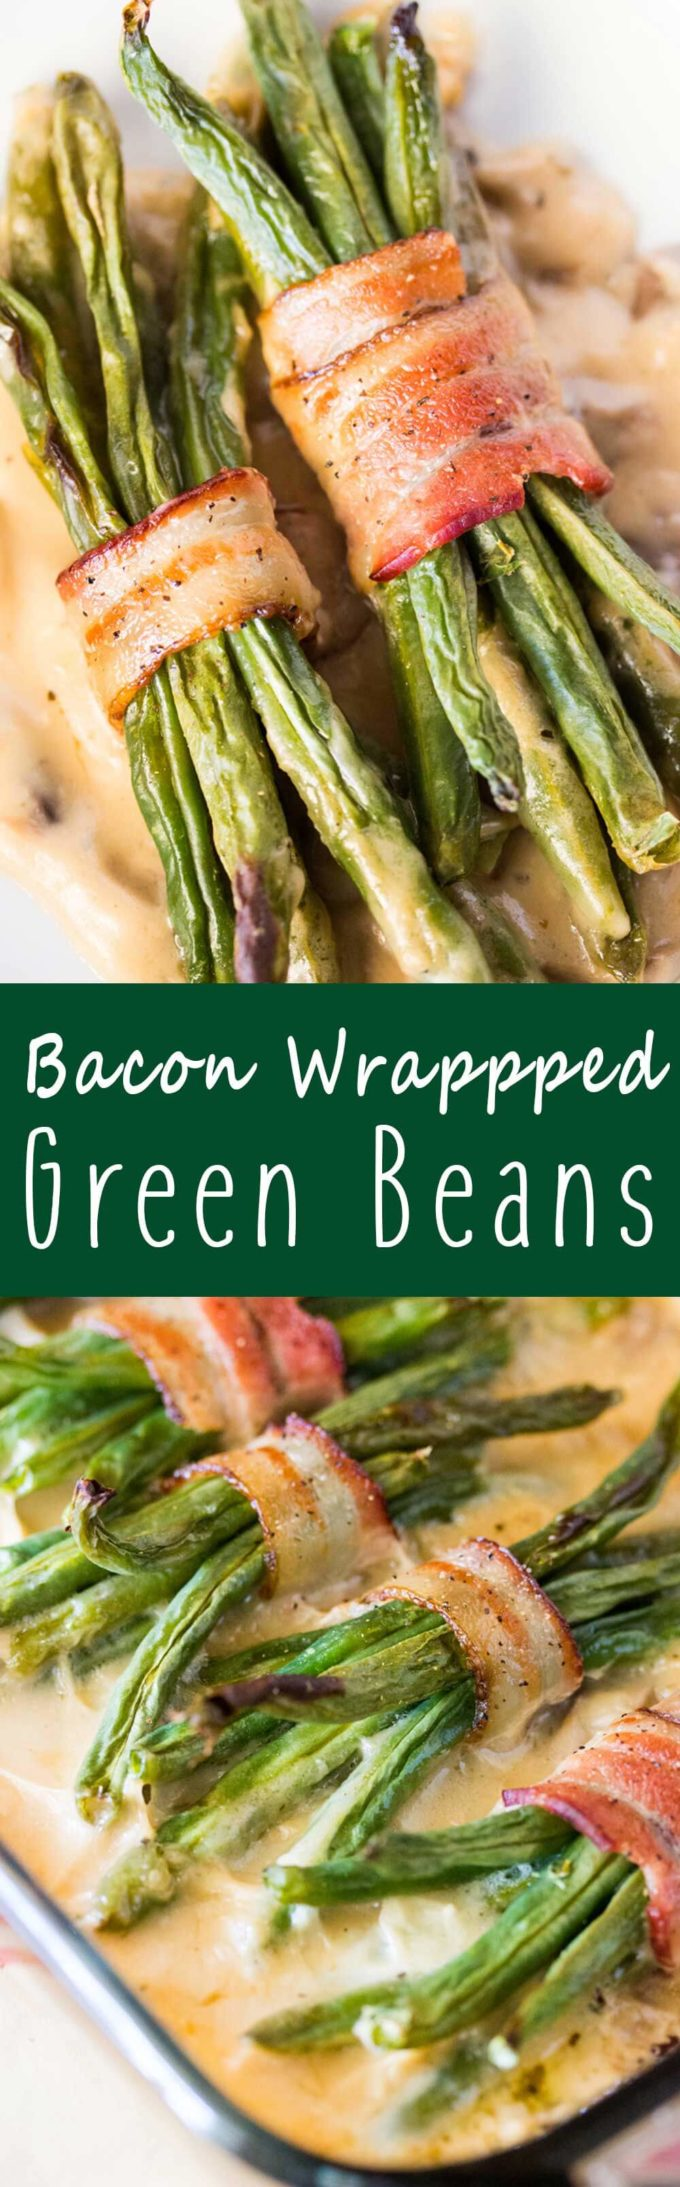 Bacon wrapped green bean bundles are a MUST for your Thanksgiving table!